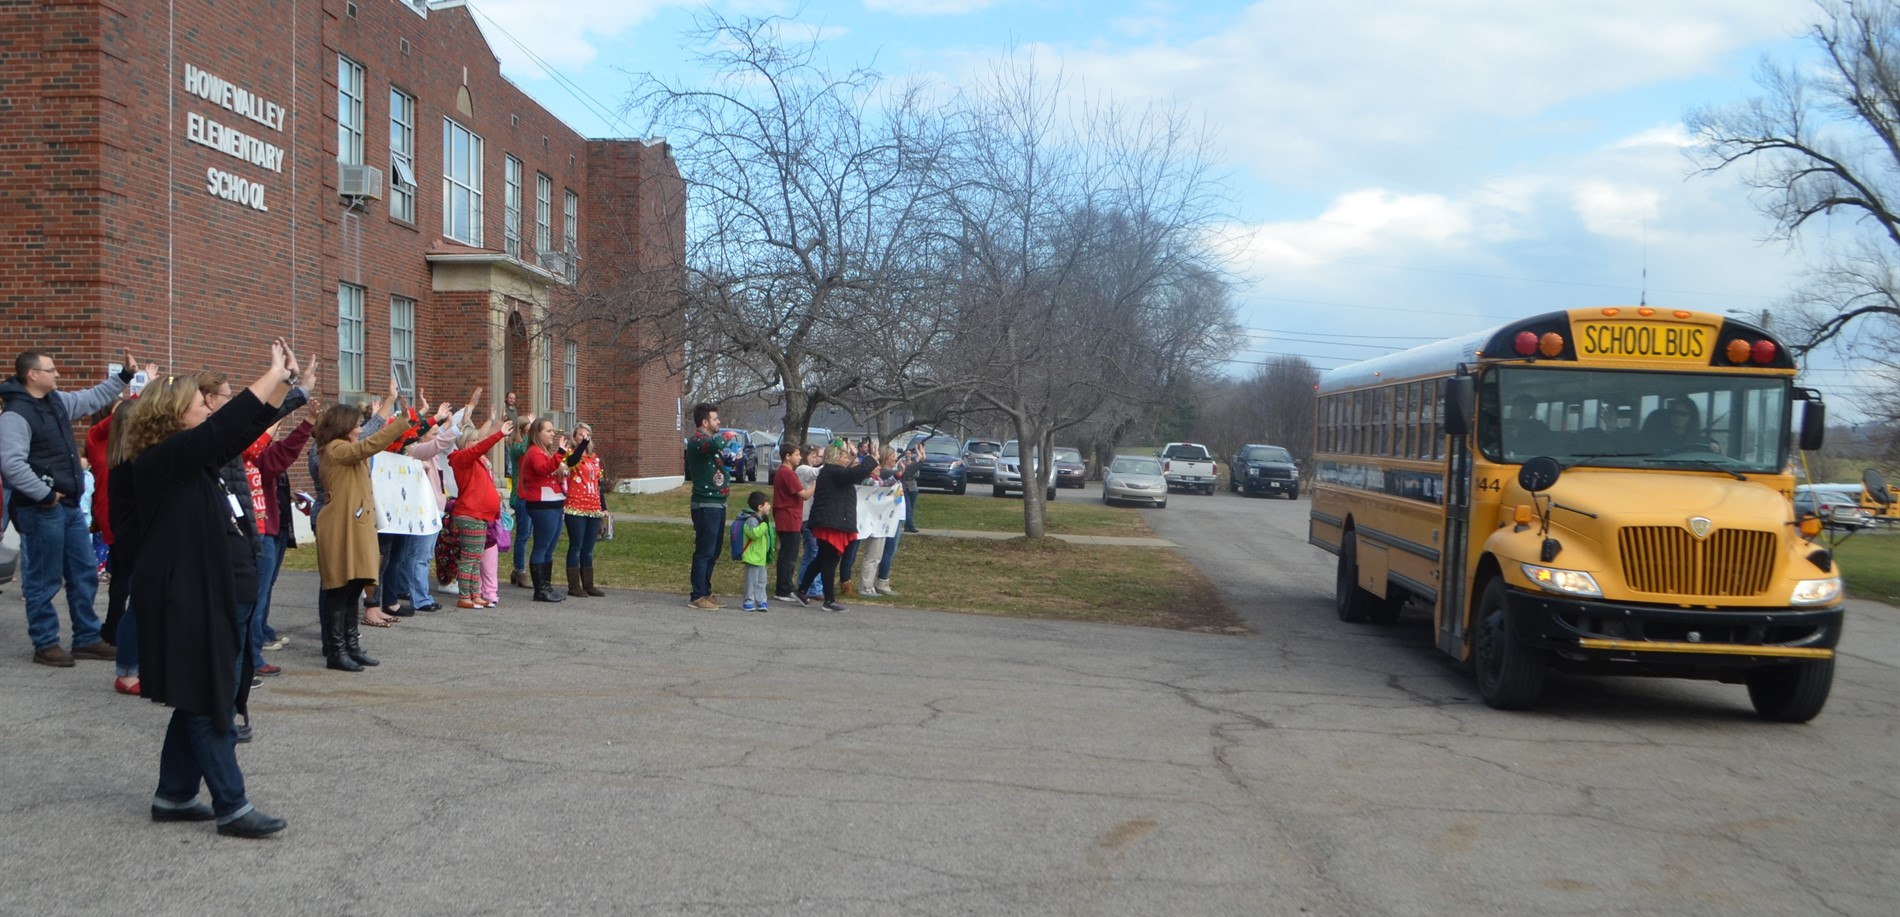 Howevalley Elementary School staff waved goodbye to their students.  They will see each other again at Cecilia Valley Elementary on January 4, 2018.